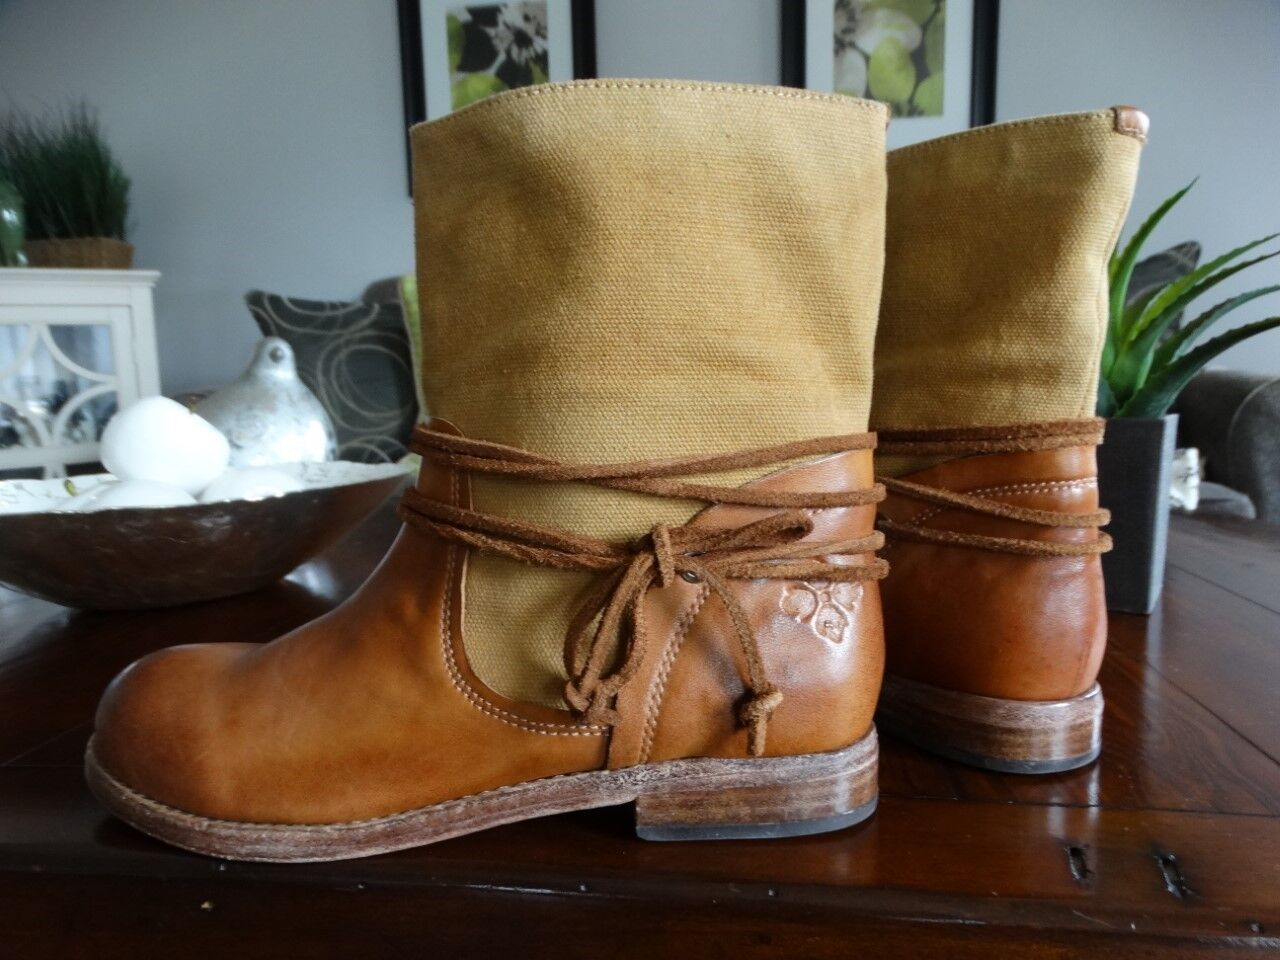 NEW PATRICIA NASH Sabbia Canvas Leather Motorcycle Boots Boots Boots Tan 6.5 0b7424